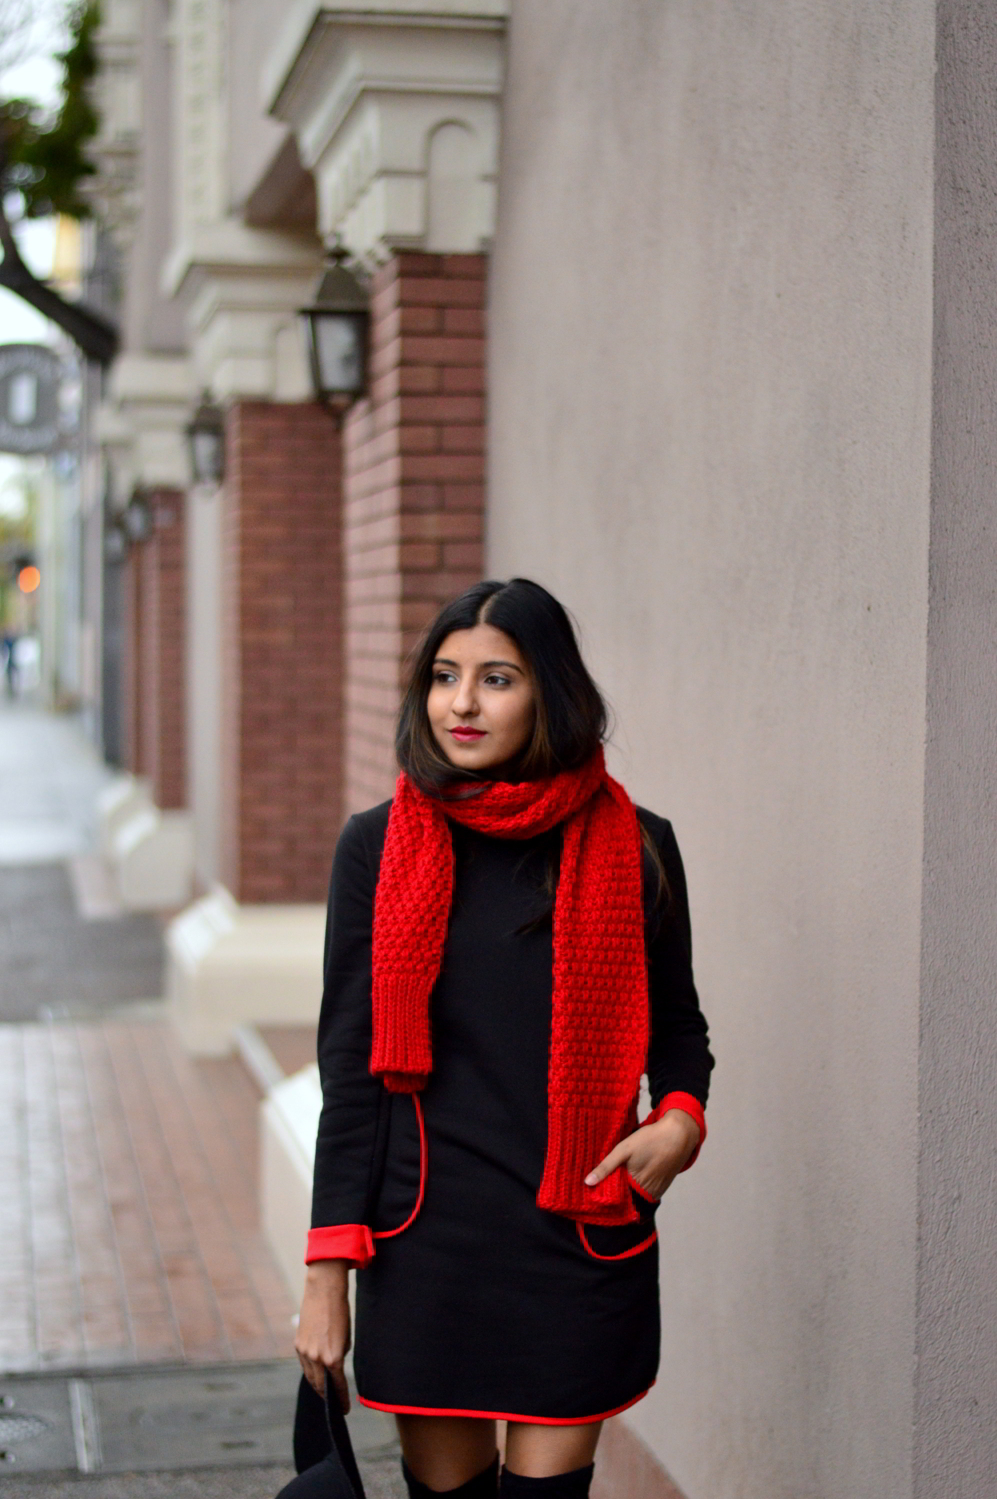 sweater-dress-mod-red-blanket-scarf-winter-style-over-the-knee-boots-blogger-outfit 4